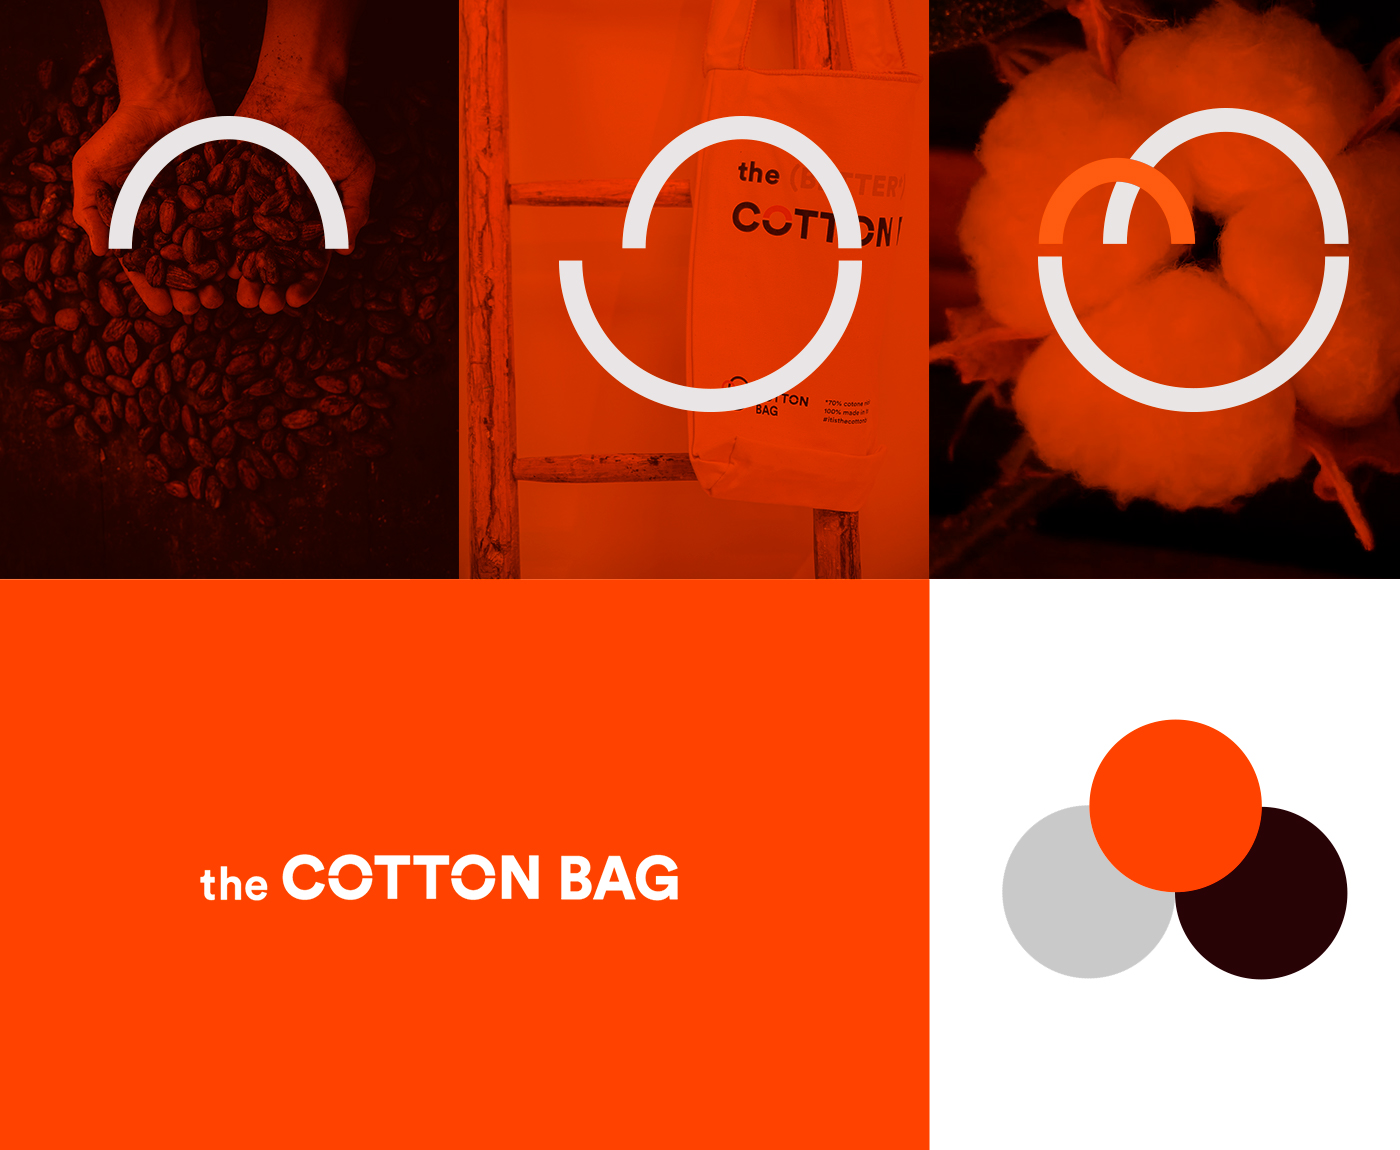 The Cotton Bag - visual identity